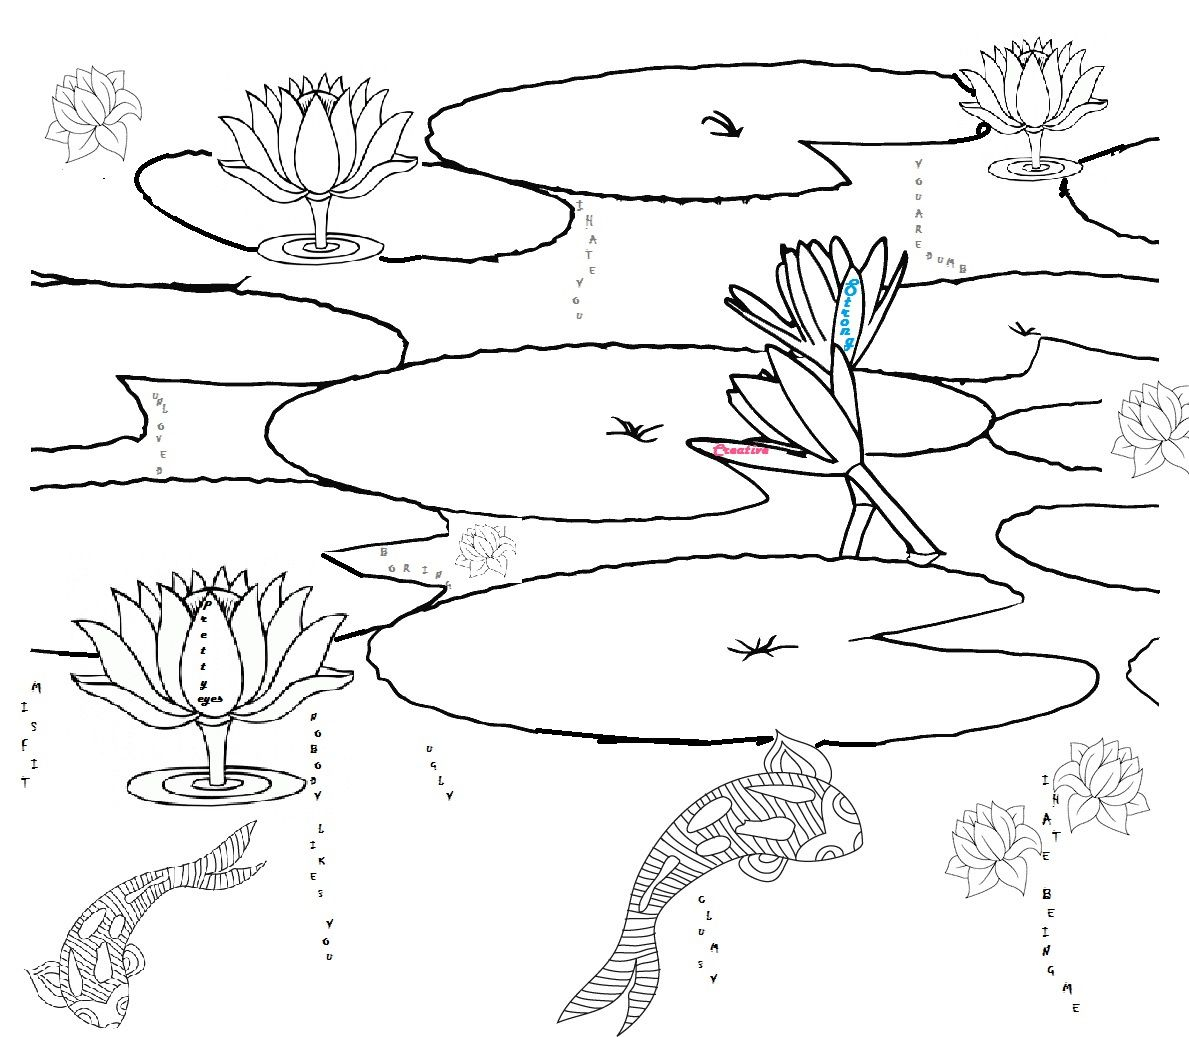 Printable Pond Habitat Coloring Page